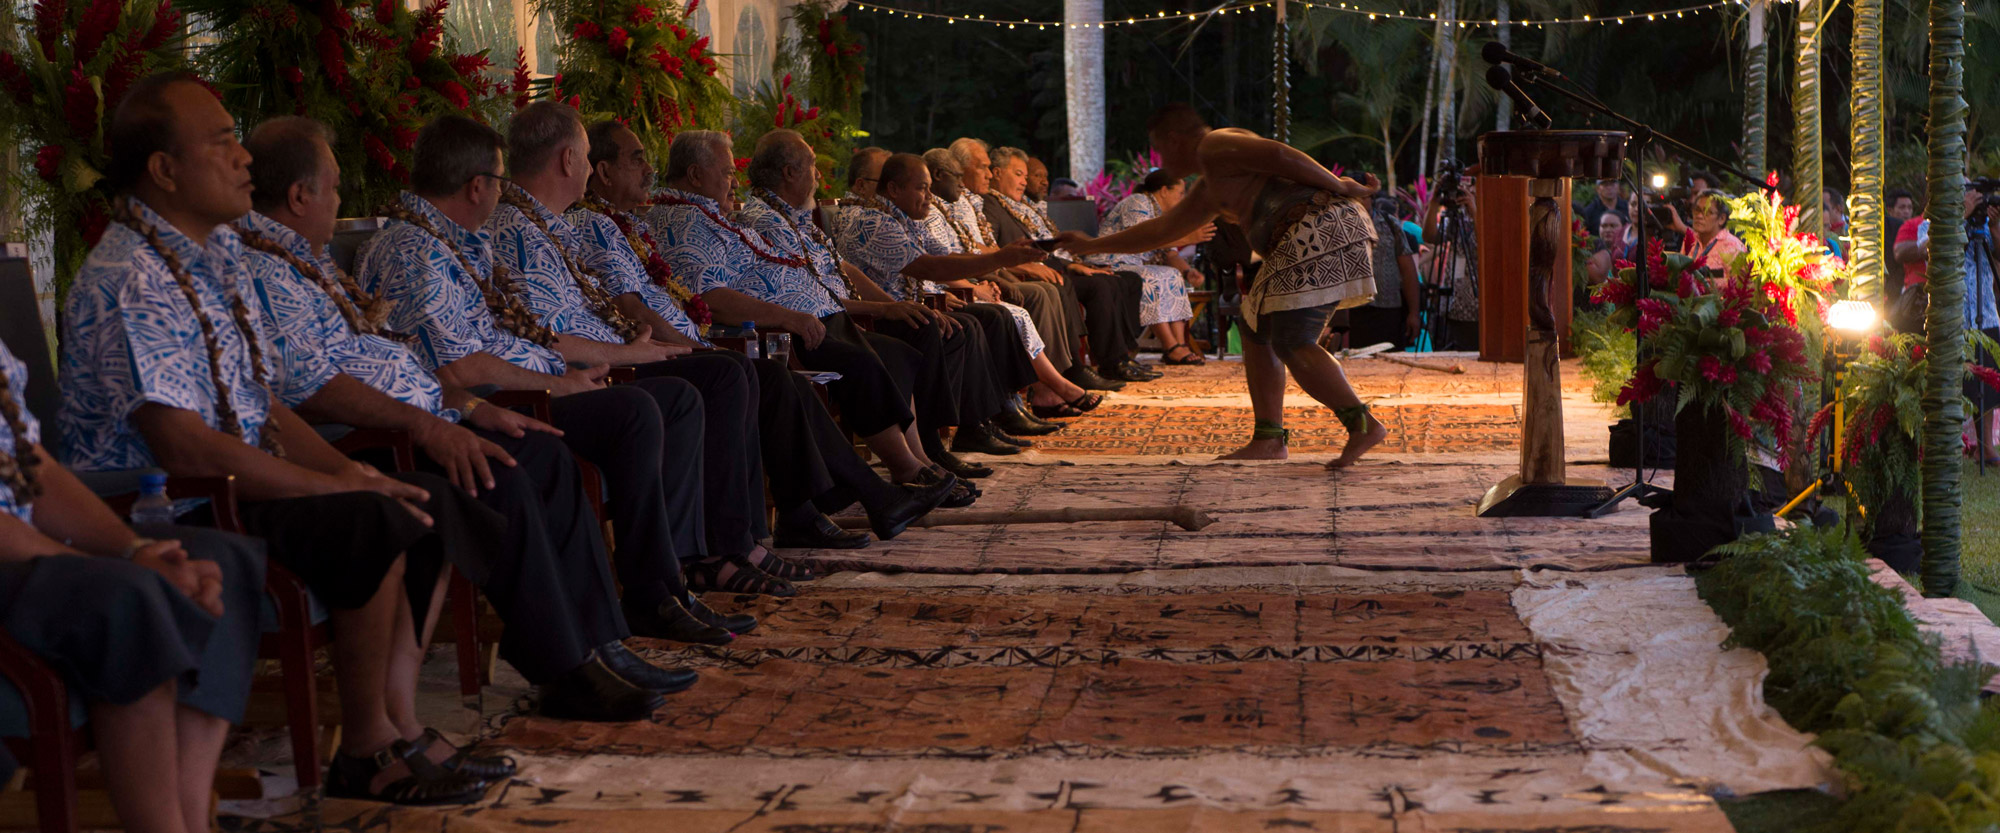 2017 Pacific Islands Forum Opening Ceremony. Photo: Flickr user US Embassy New Zealand